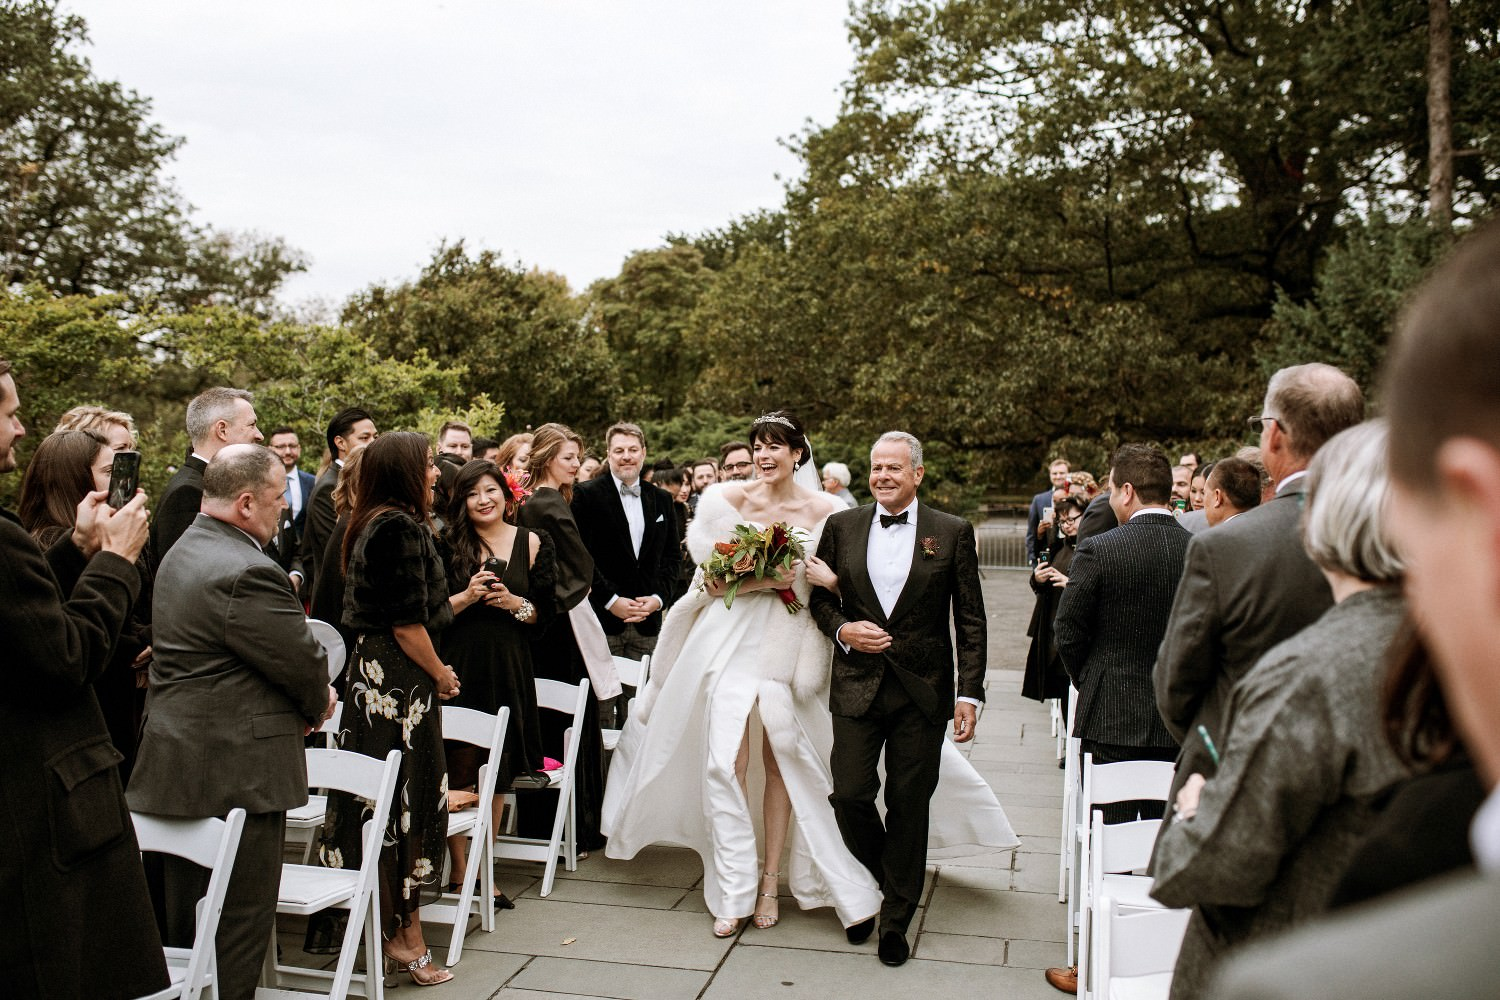 Father walks his daughter down the aisle at a wedding at the Brooklyn Botanic Garden